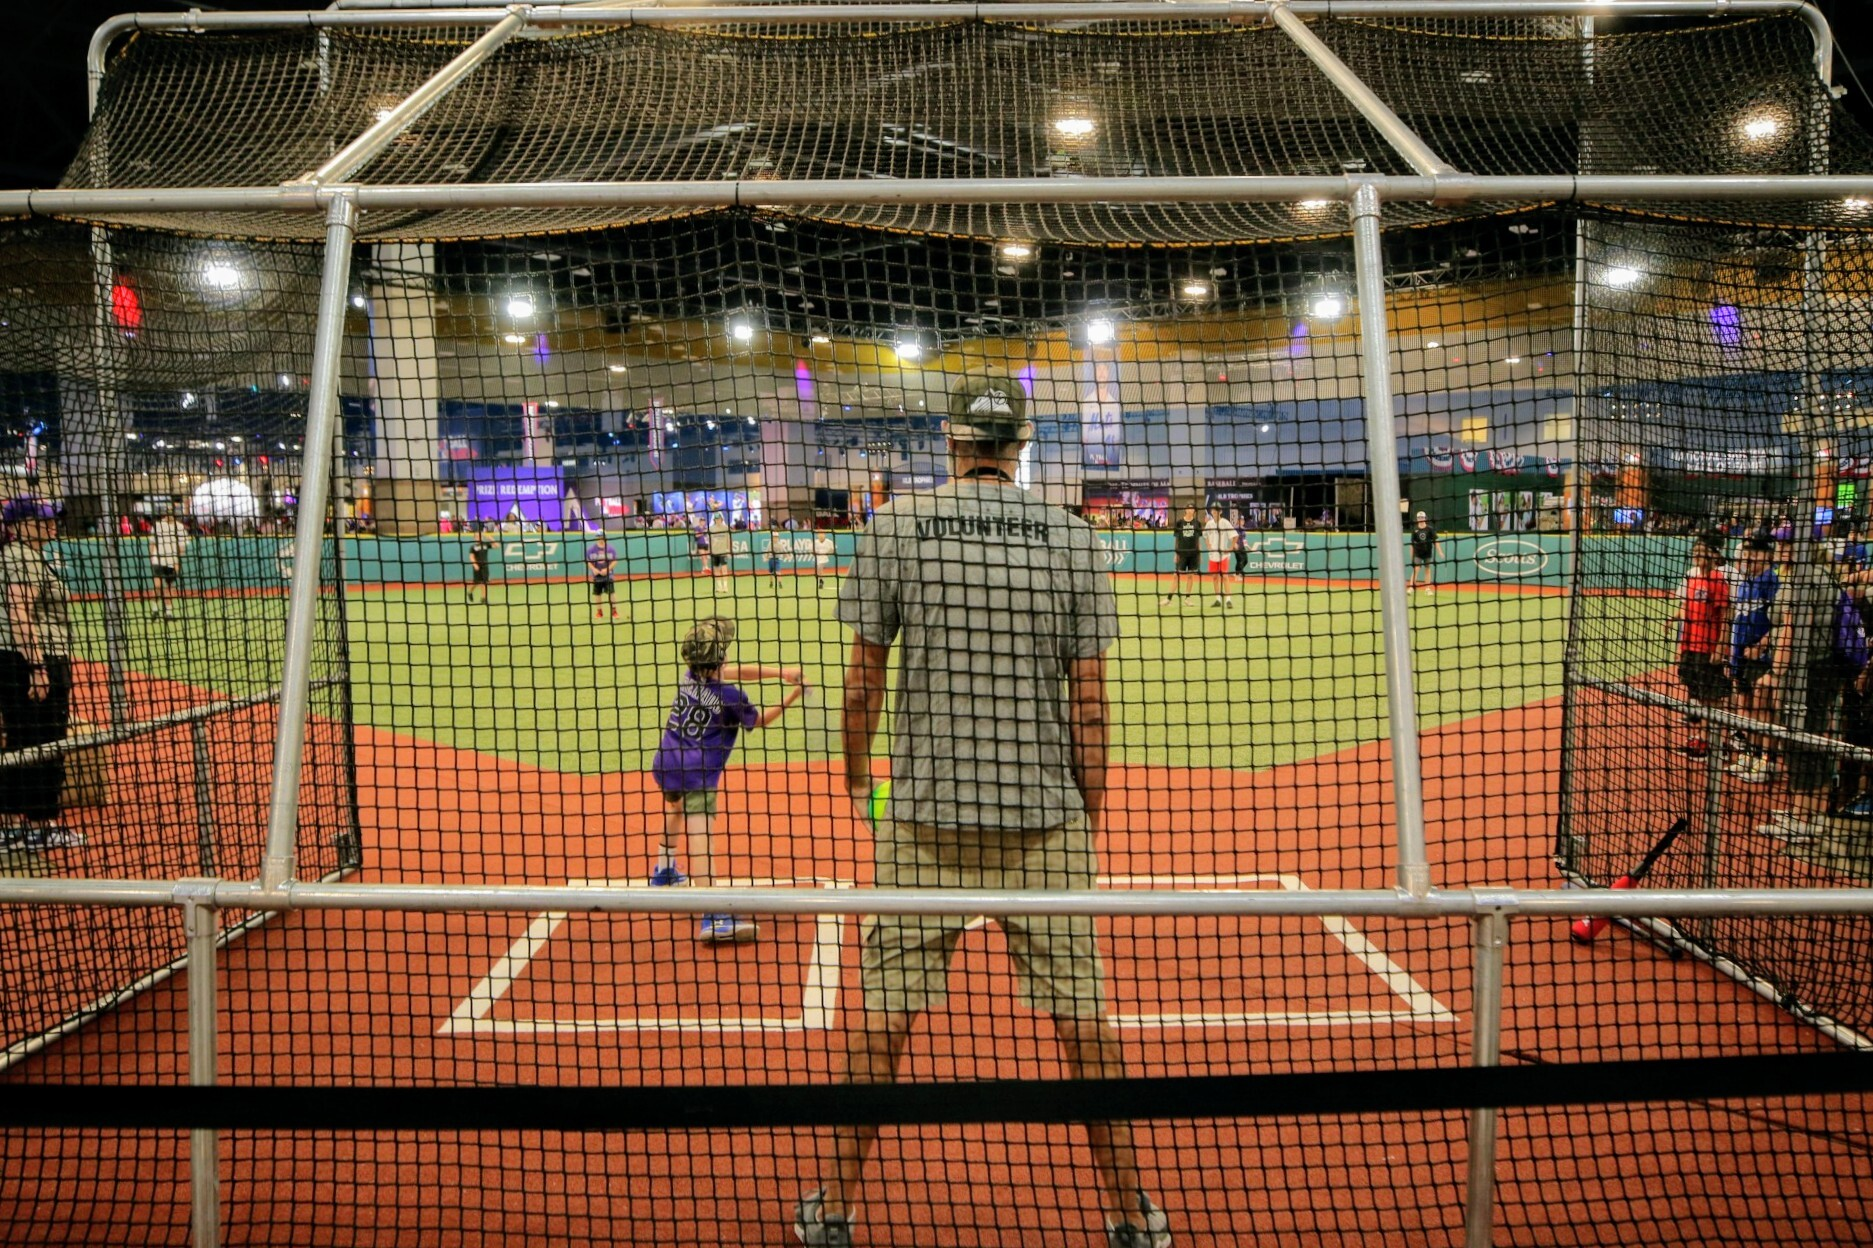 Kids play at the MLB Play Ball Park at the Colorado Convention Center in Denver on Tuesday, July 13, 2021.